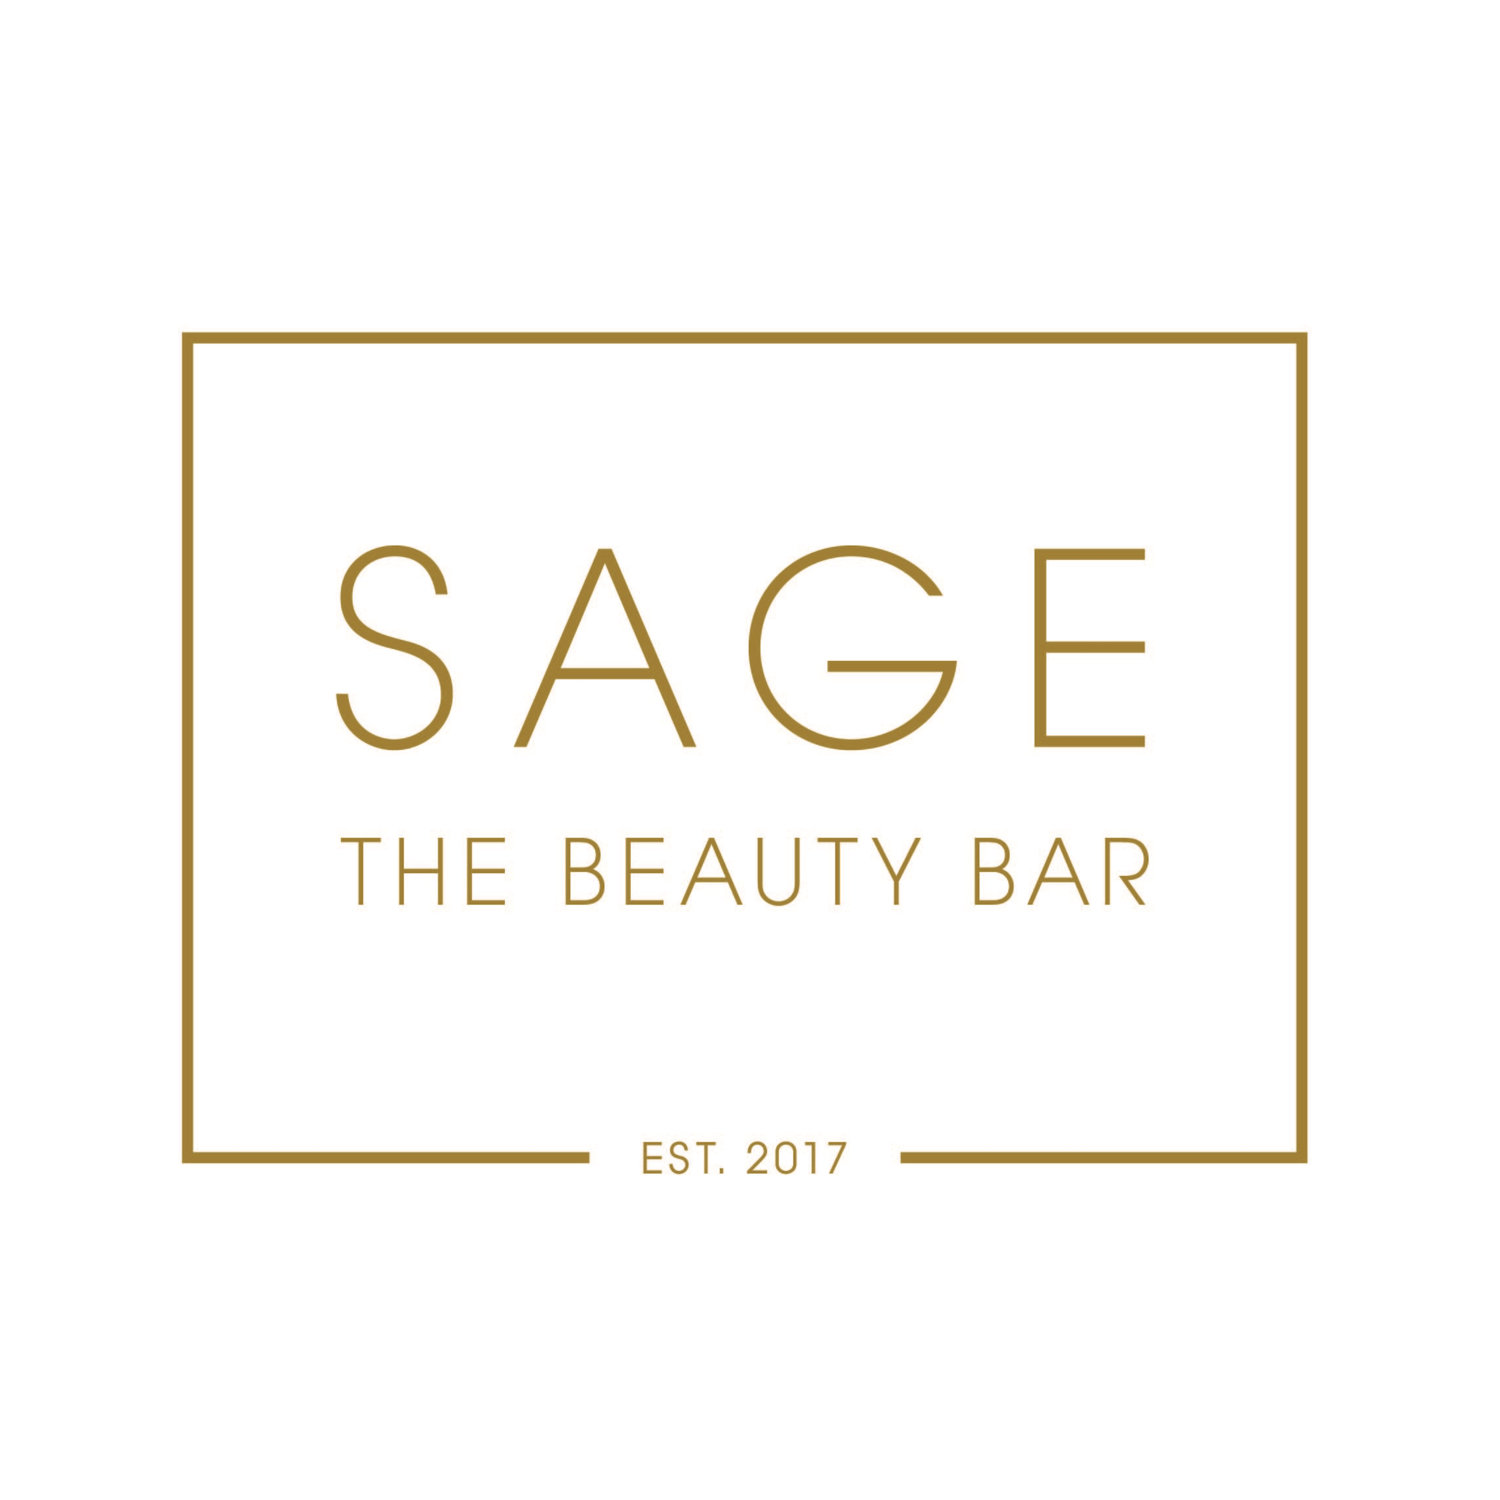 Sage The Beauty Bar